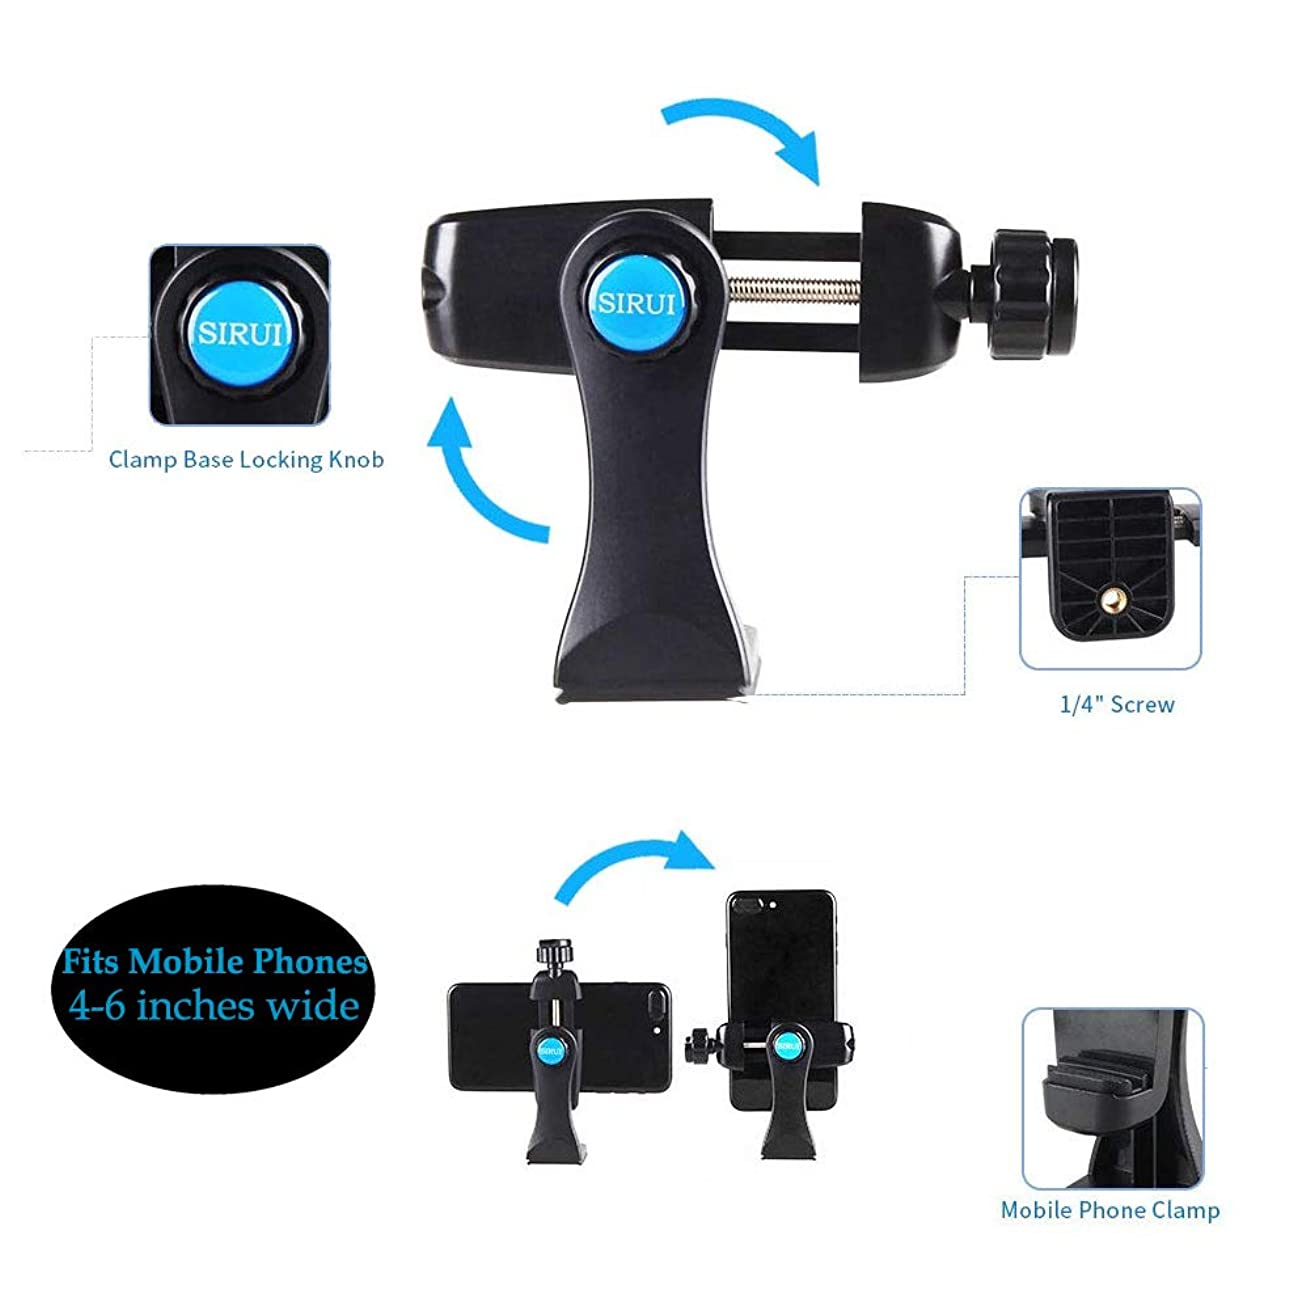 Sirui TSH-01KX-1 Smartphone Tripod/Mobile Phone Clamp (Multi-Directional) for iPhone Xs,X,XR,6S,6,7,8,Samsung Galaxy Note 9 Note 8,S8,S9,S10e,LG G8 (Fits Mobile Phones 4 to 6 Inches Wide)